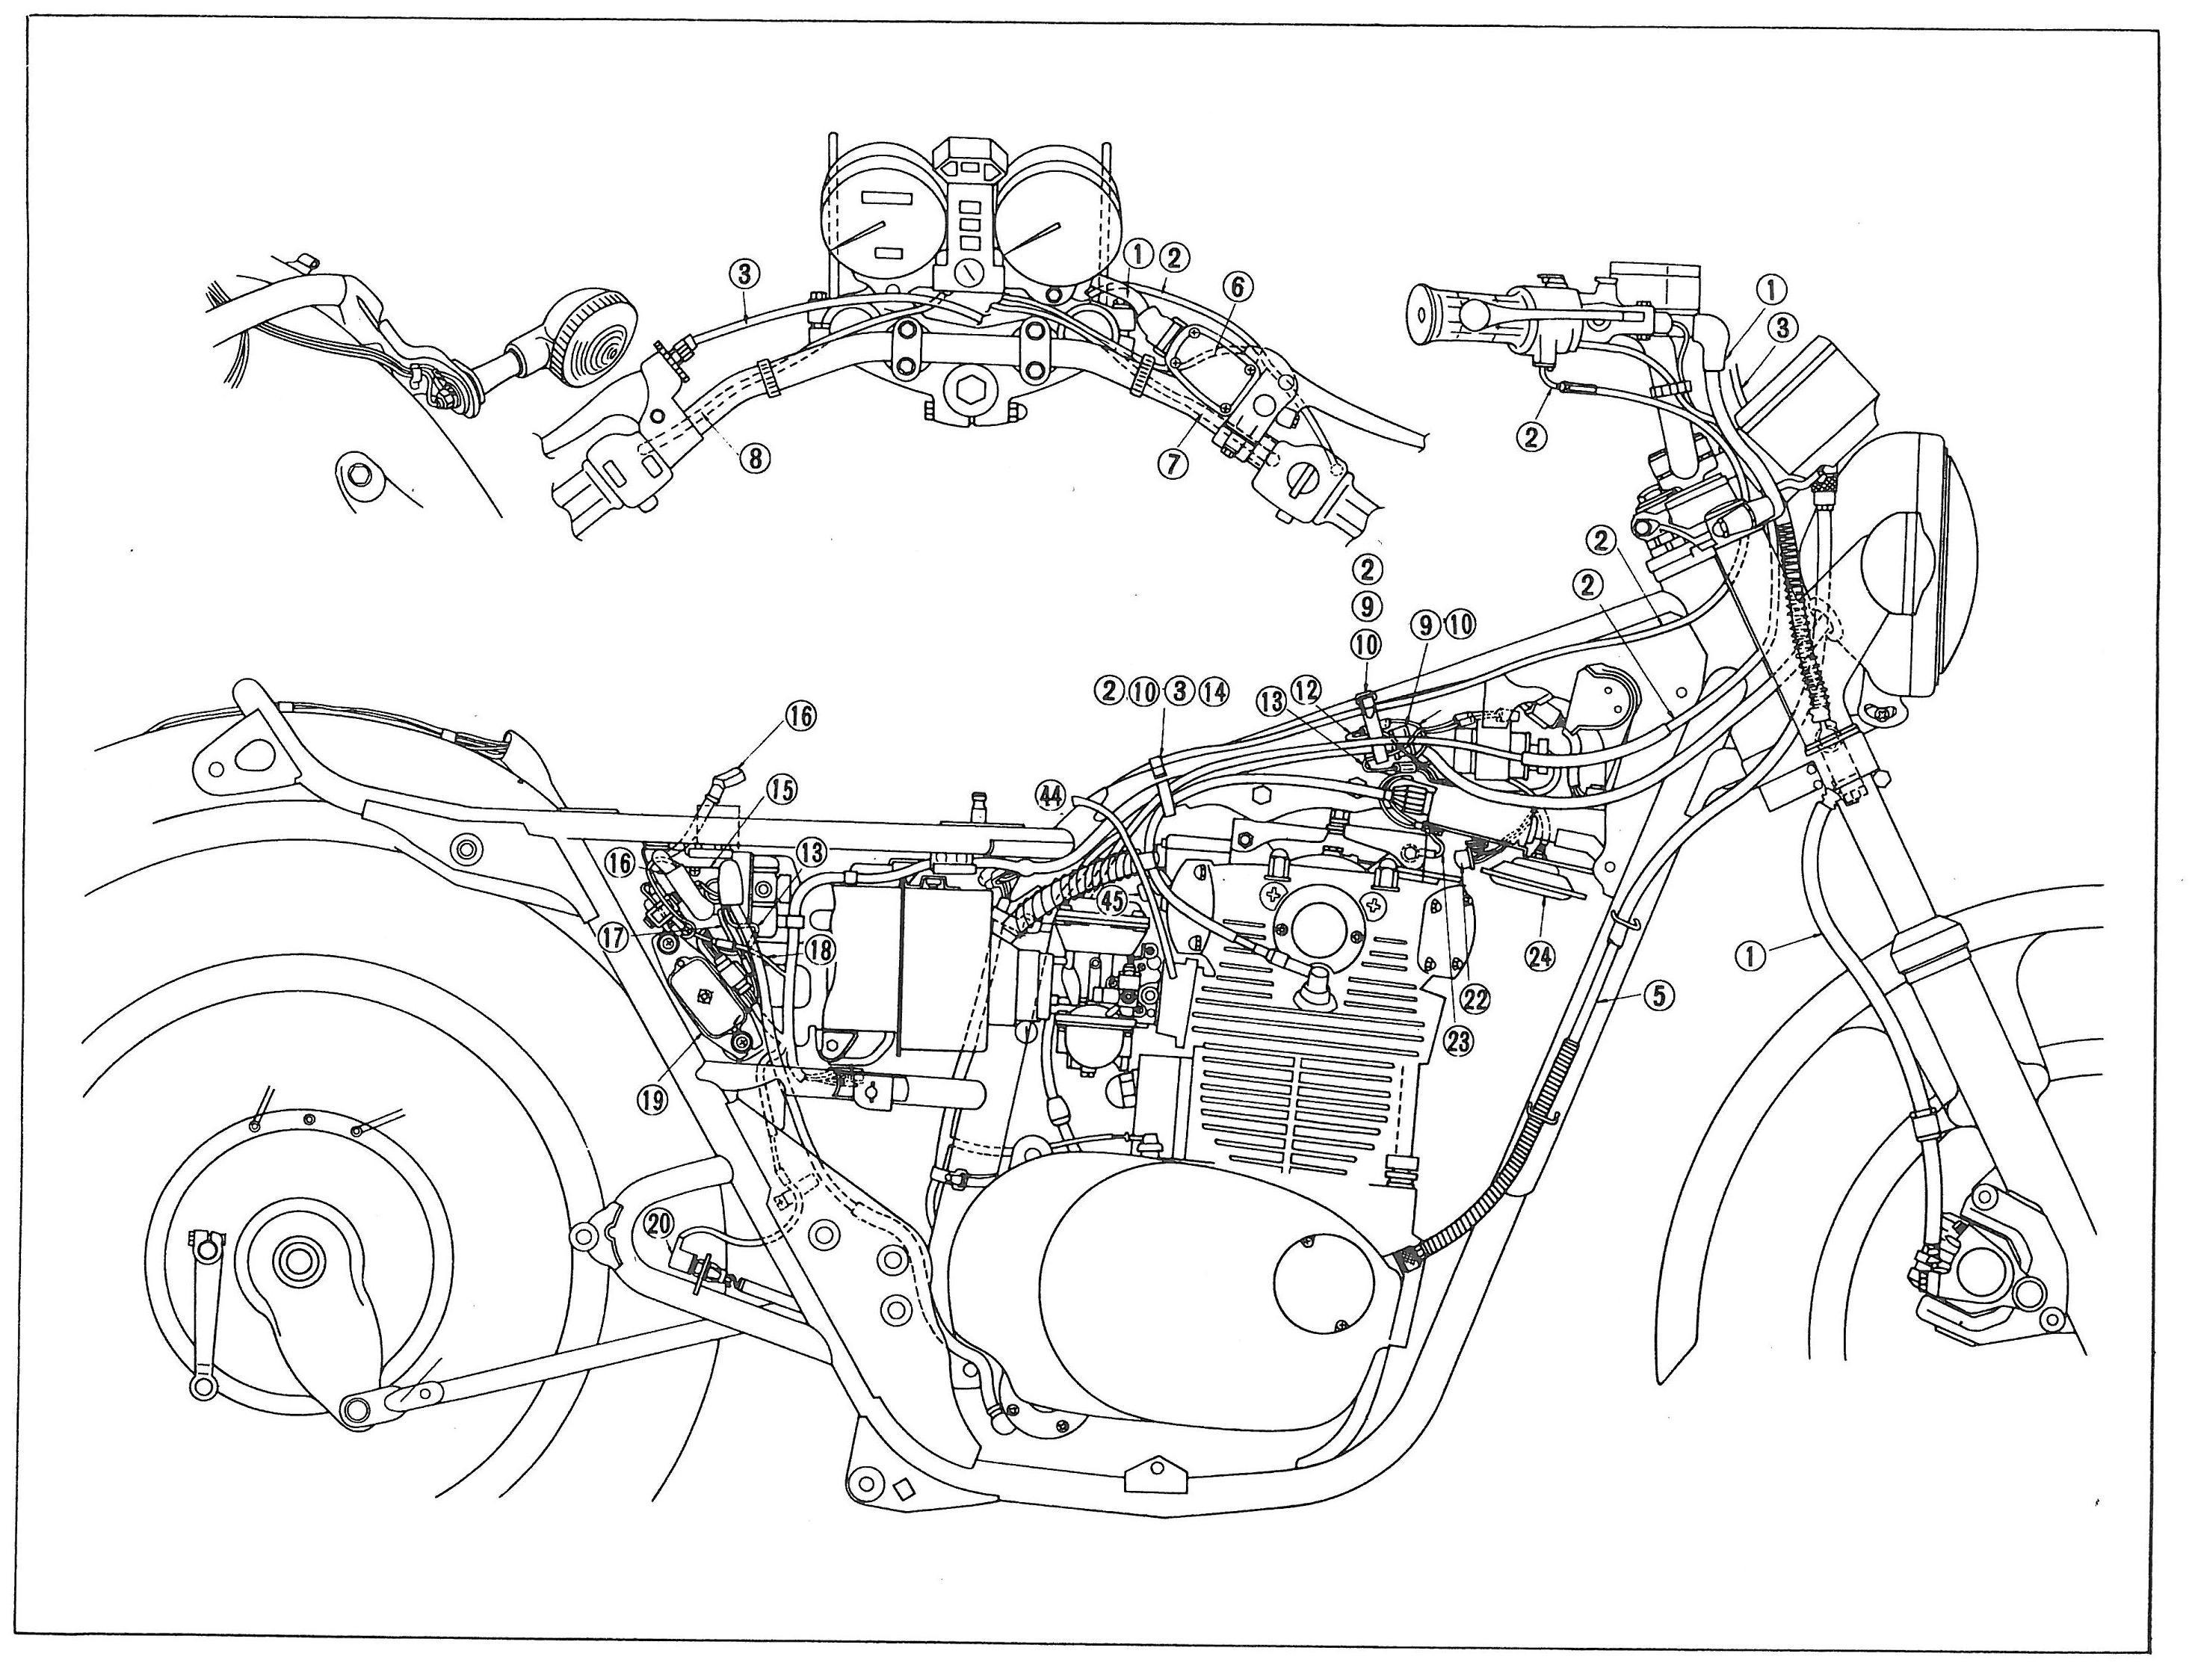 small resolution of 1981 xs650 engine diagram wiring diagram used xs650 engine diagram